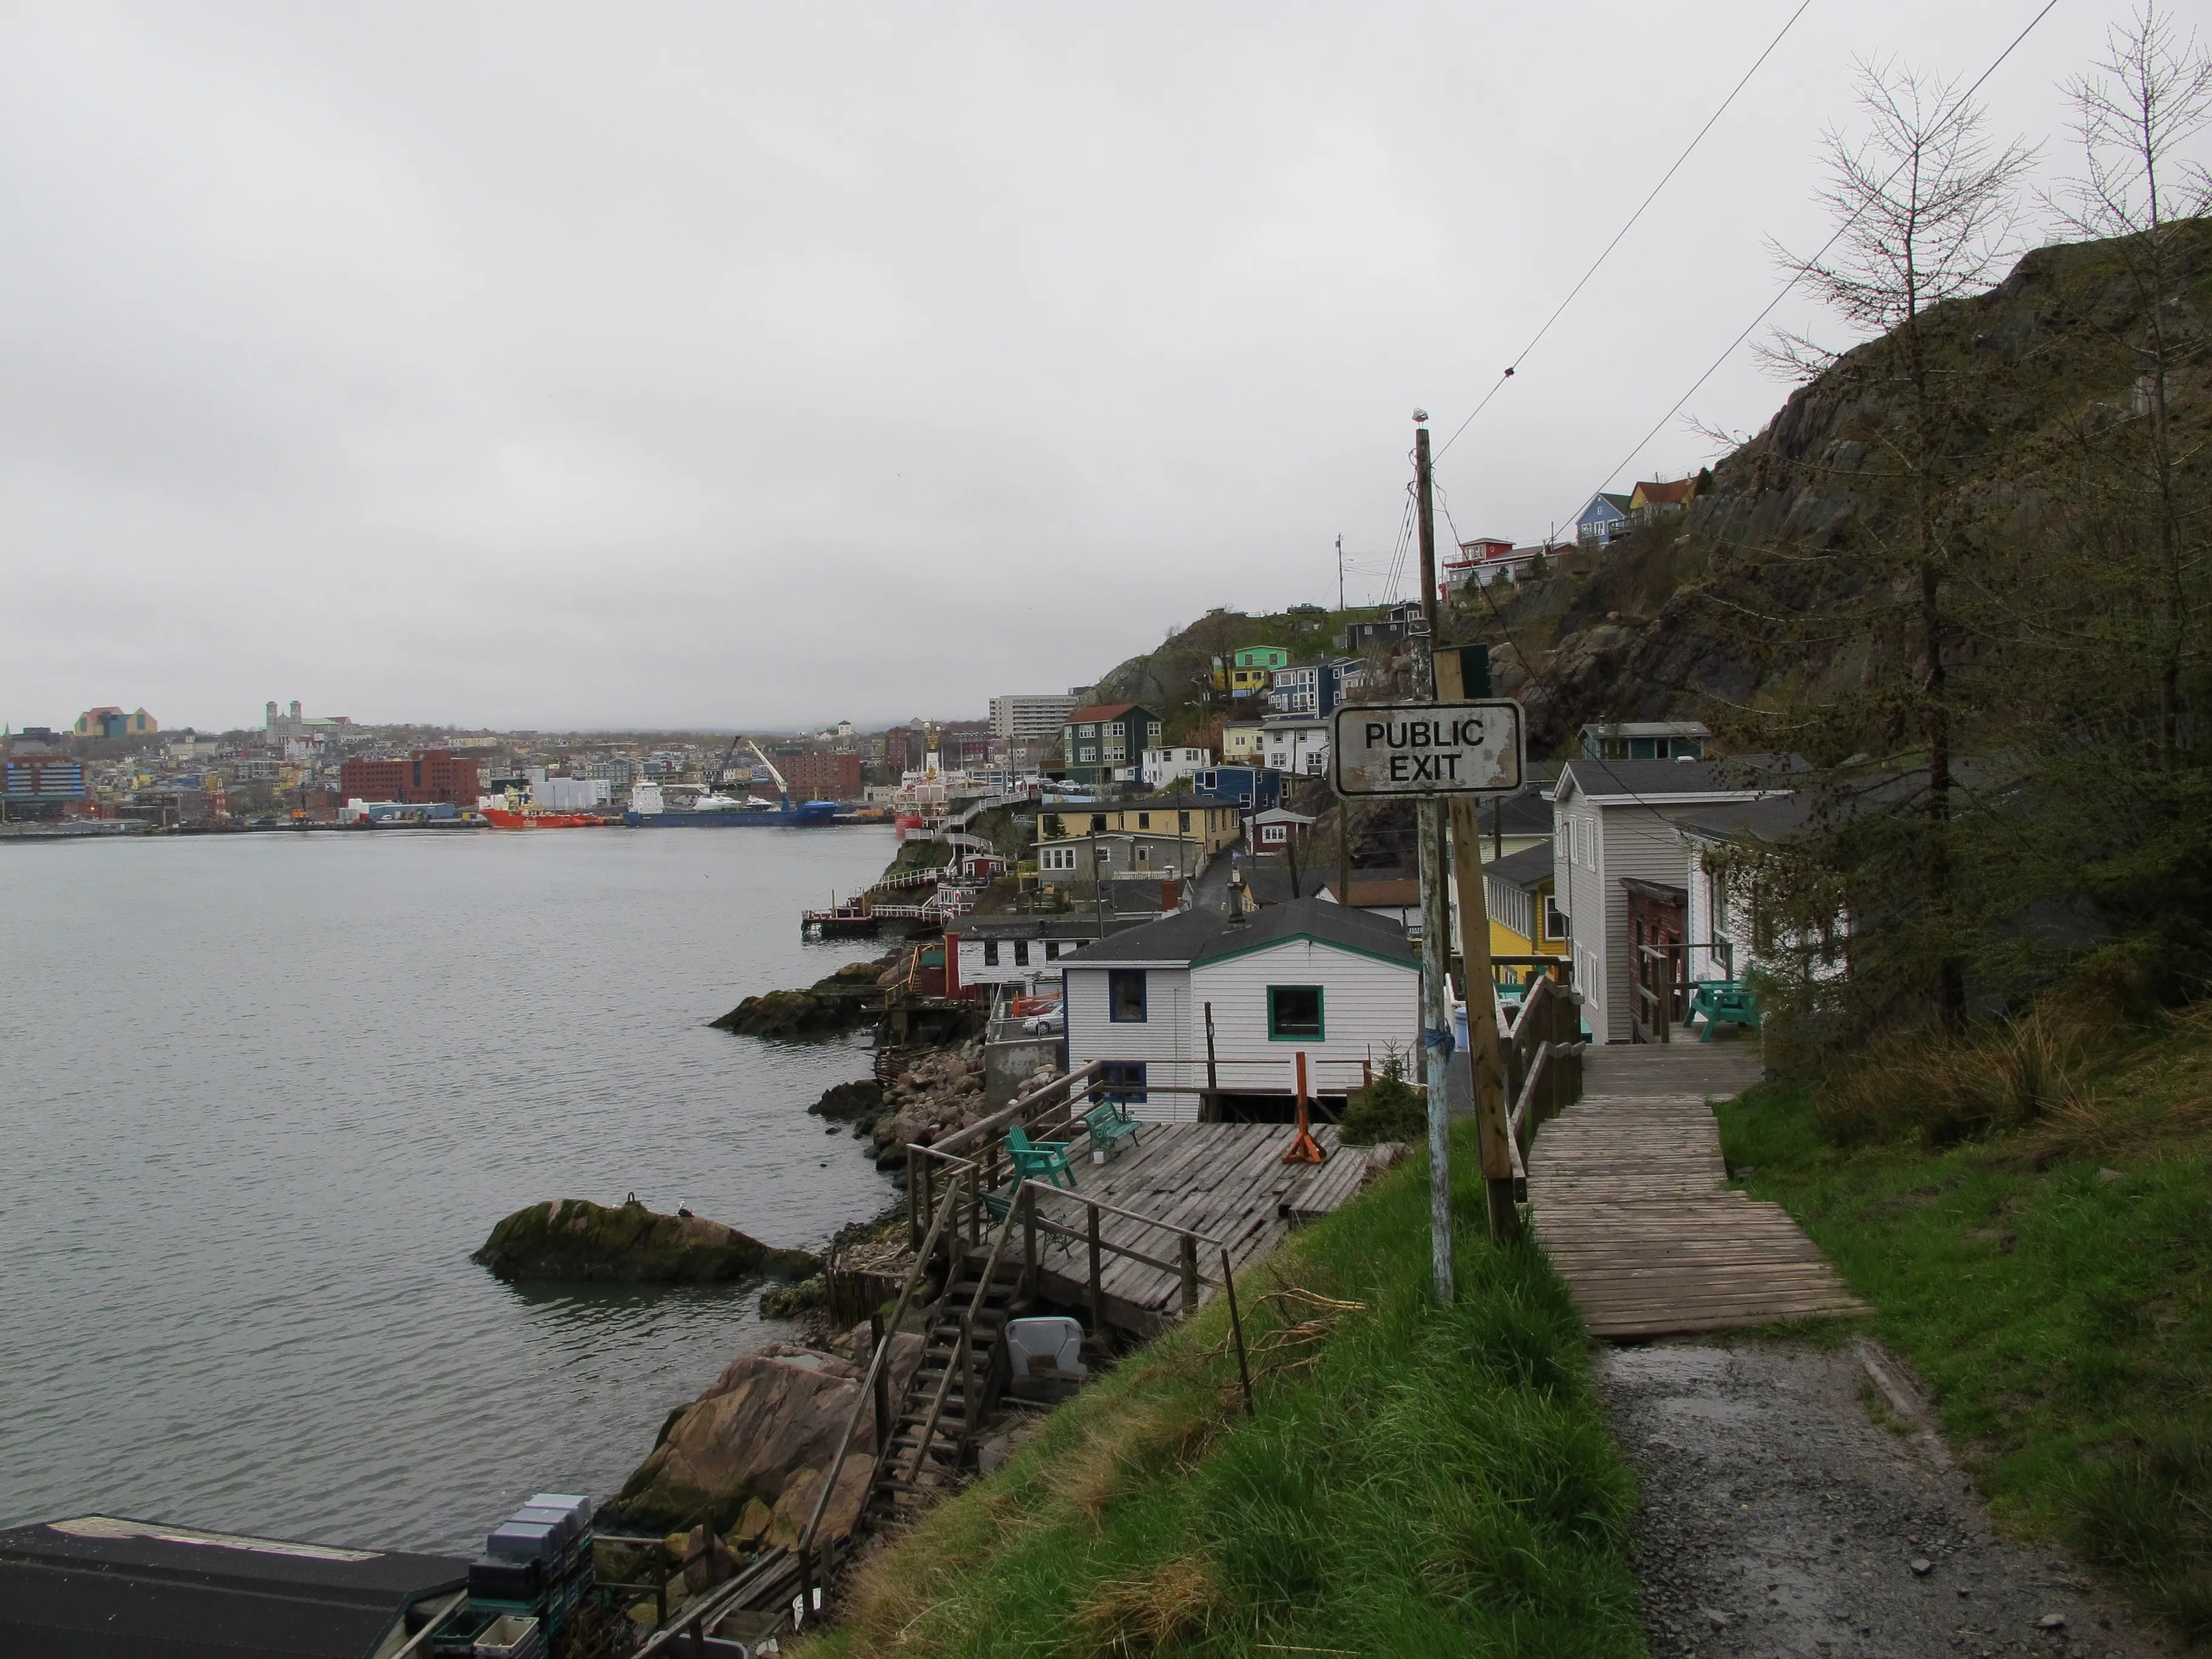 A walk through The Battery is a must on any visit to St. John's.